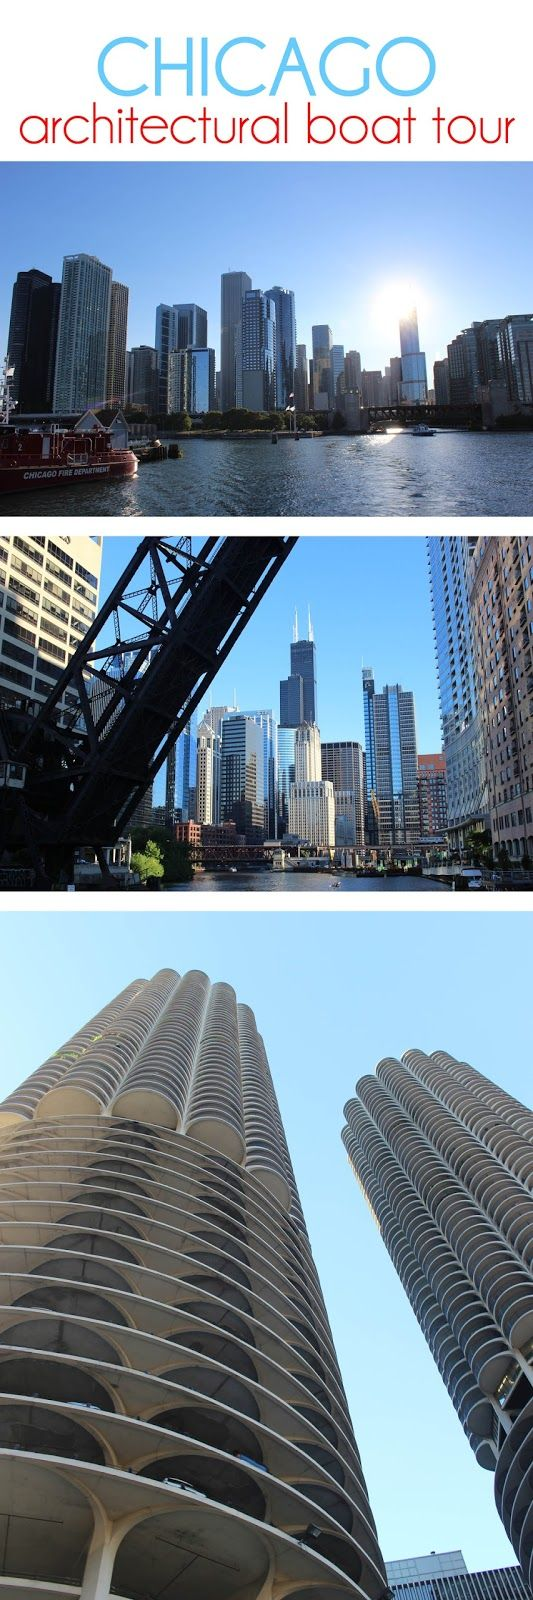 cornflake dreams.: date night: chicago architectural boat tour. #date #chicago